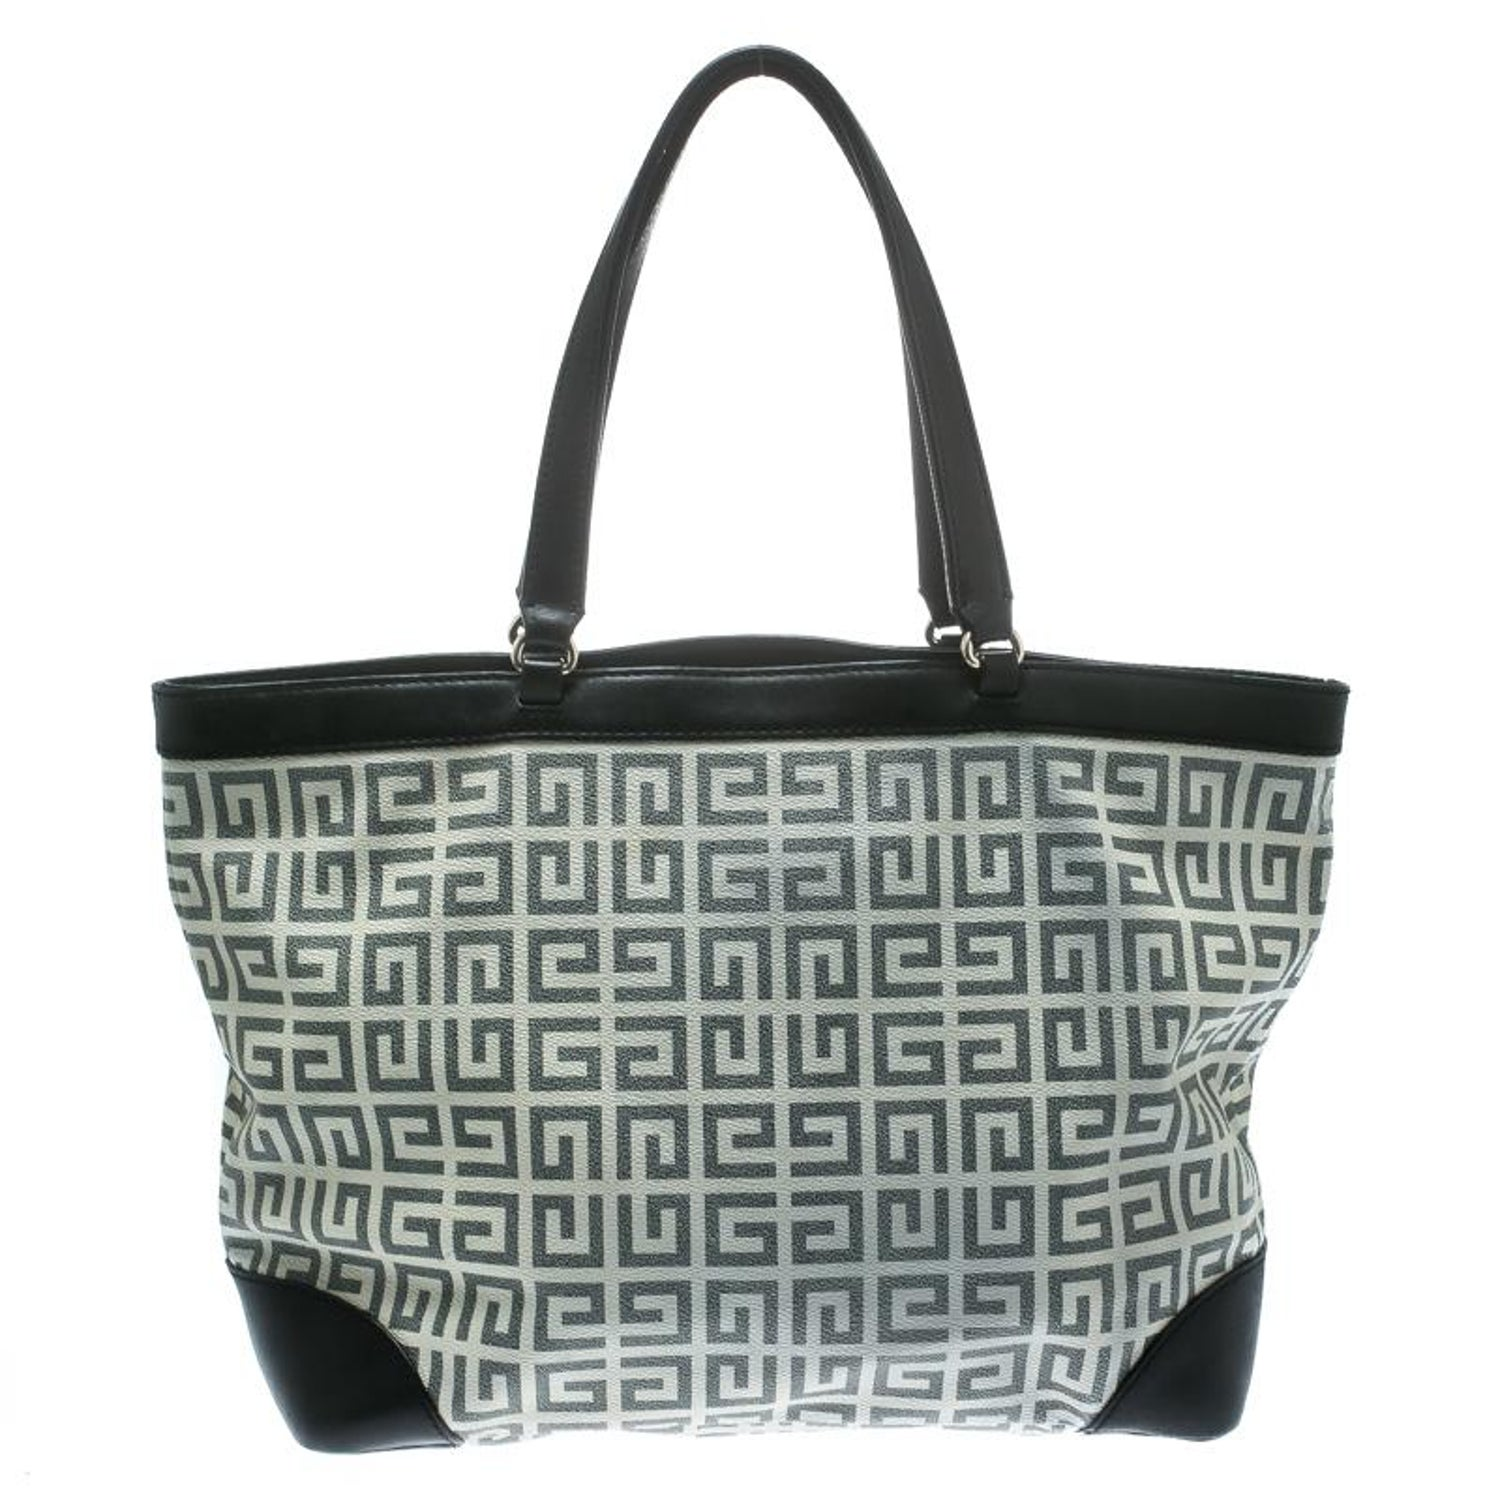 78527c2eb Givenchy Grey/Black Coated Canvas and Leather Shopper Tote For Sale at  1stdibs